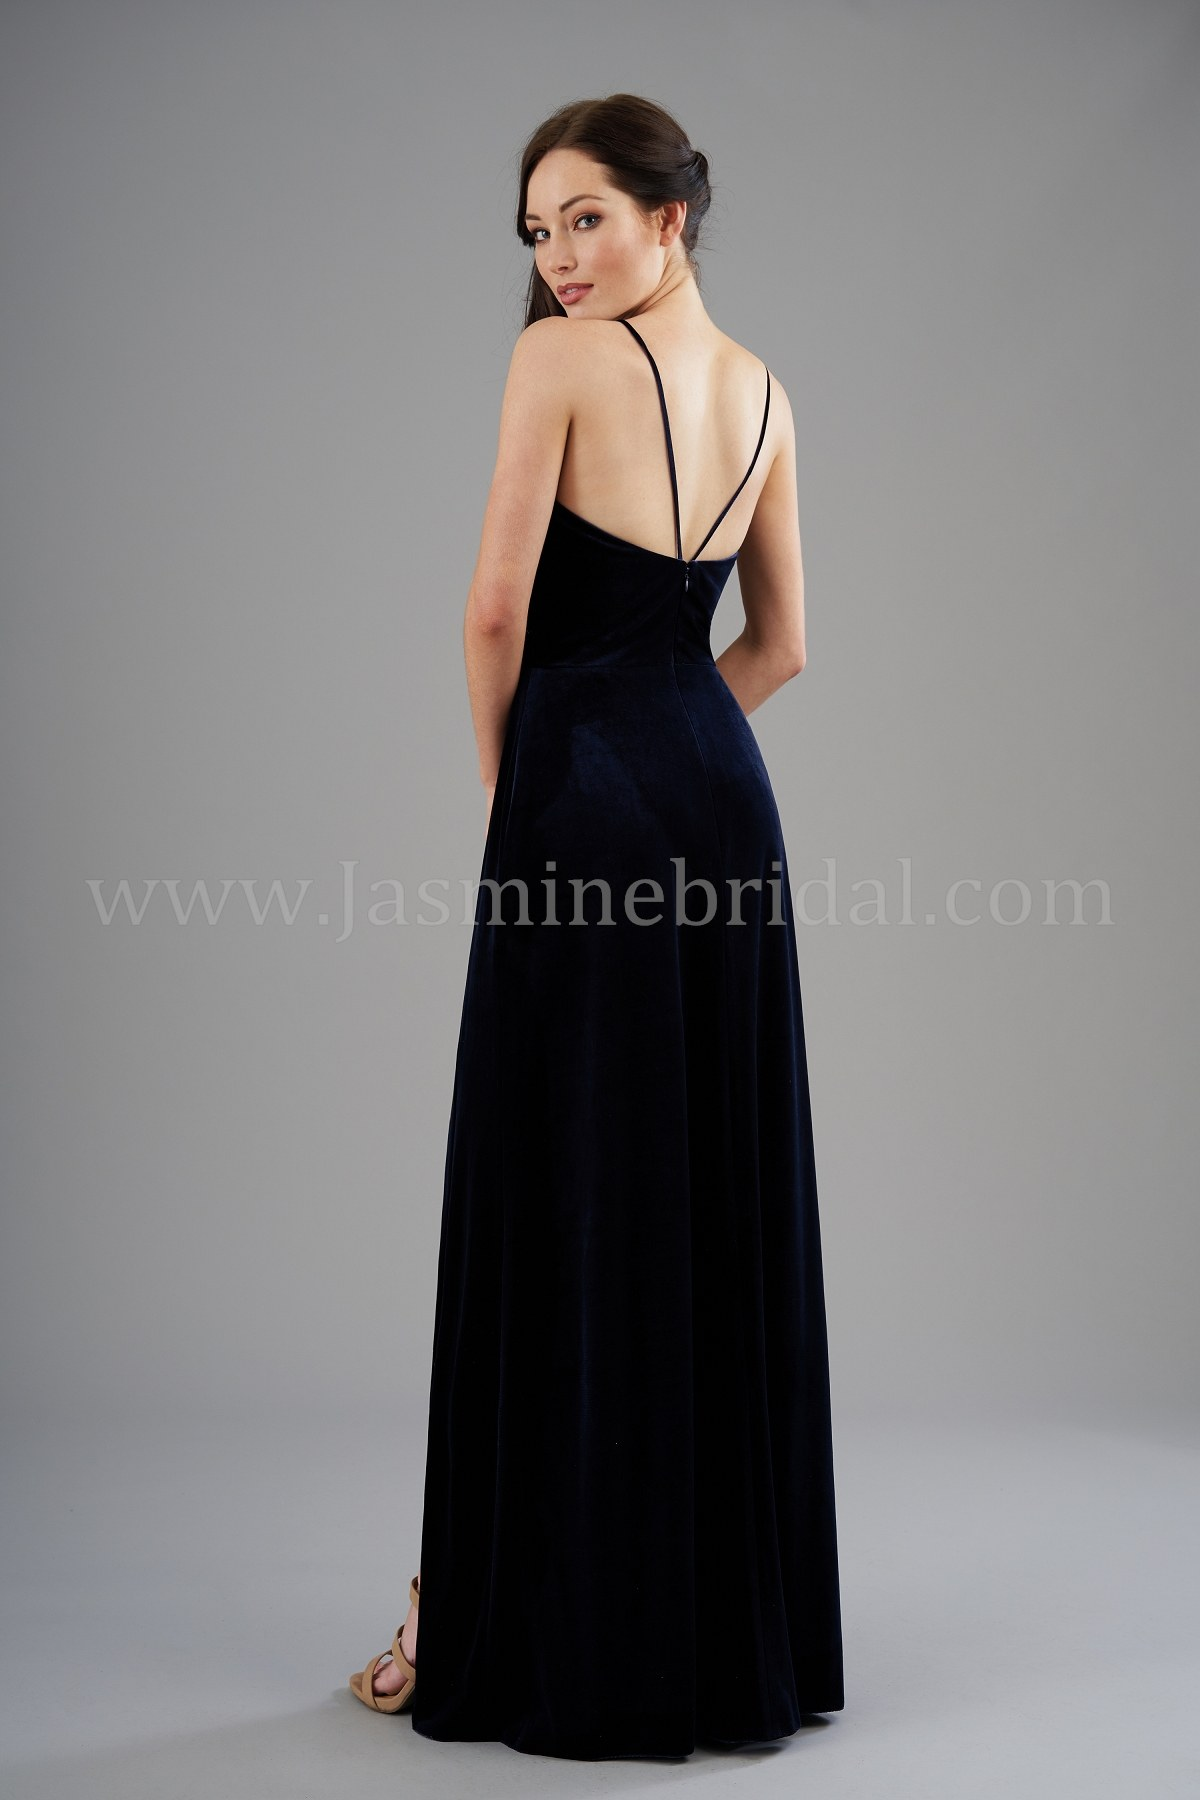 bridesmaid-dresses-B203065-B